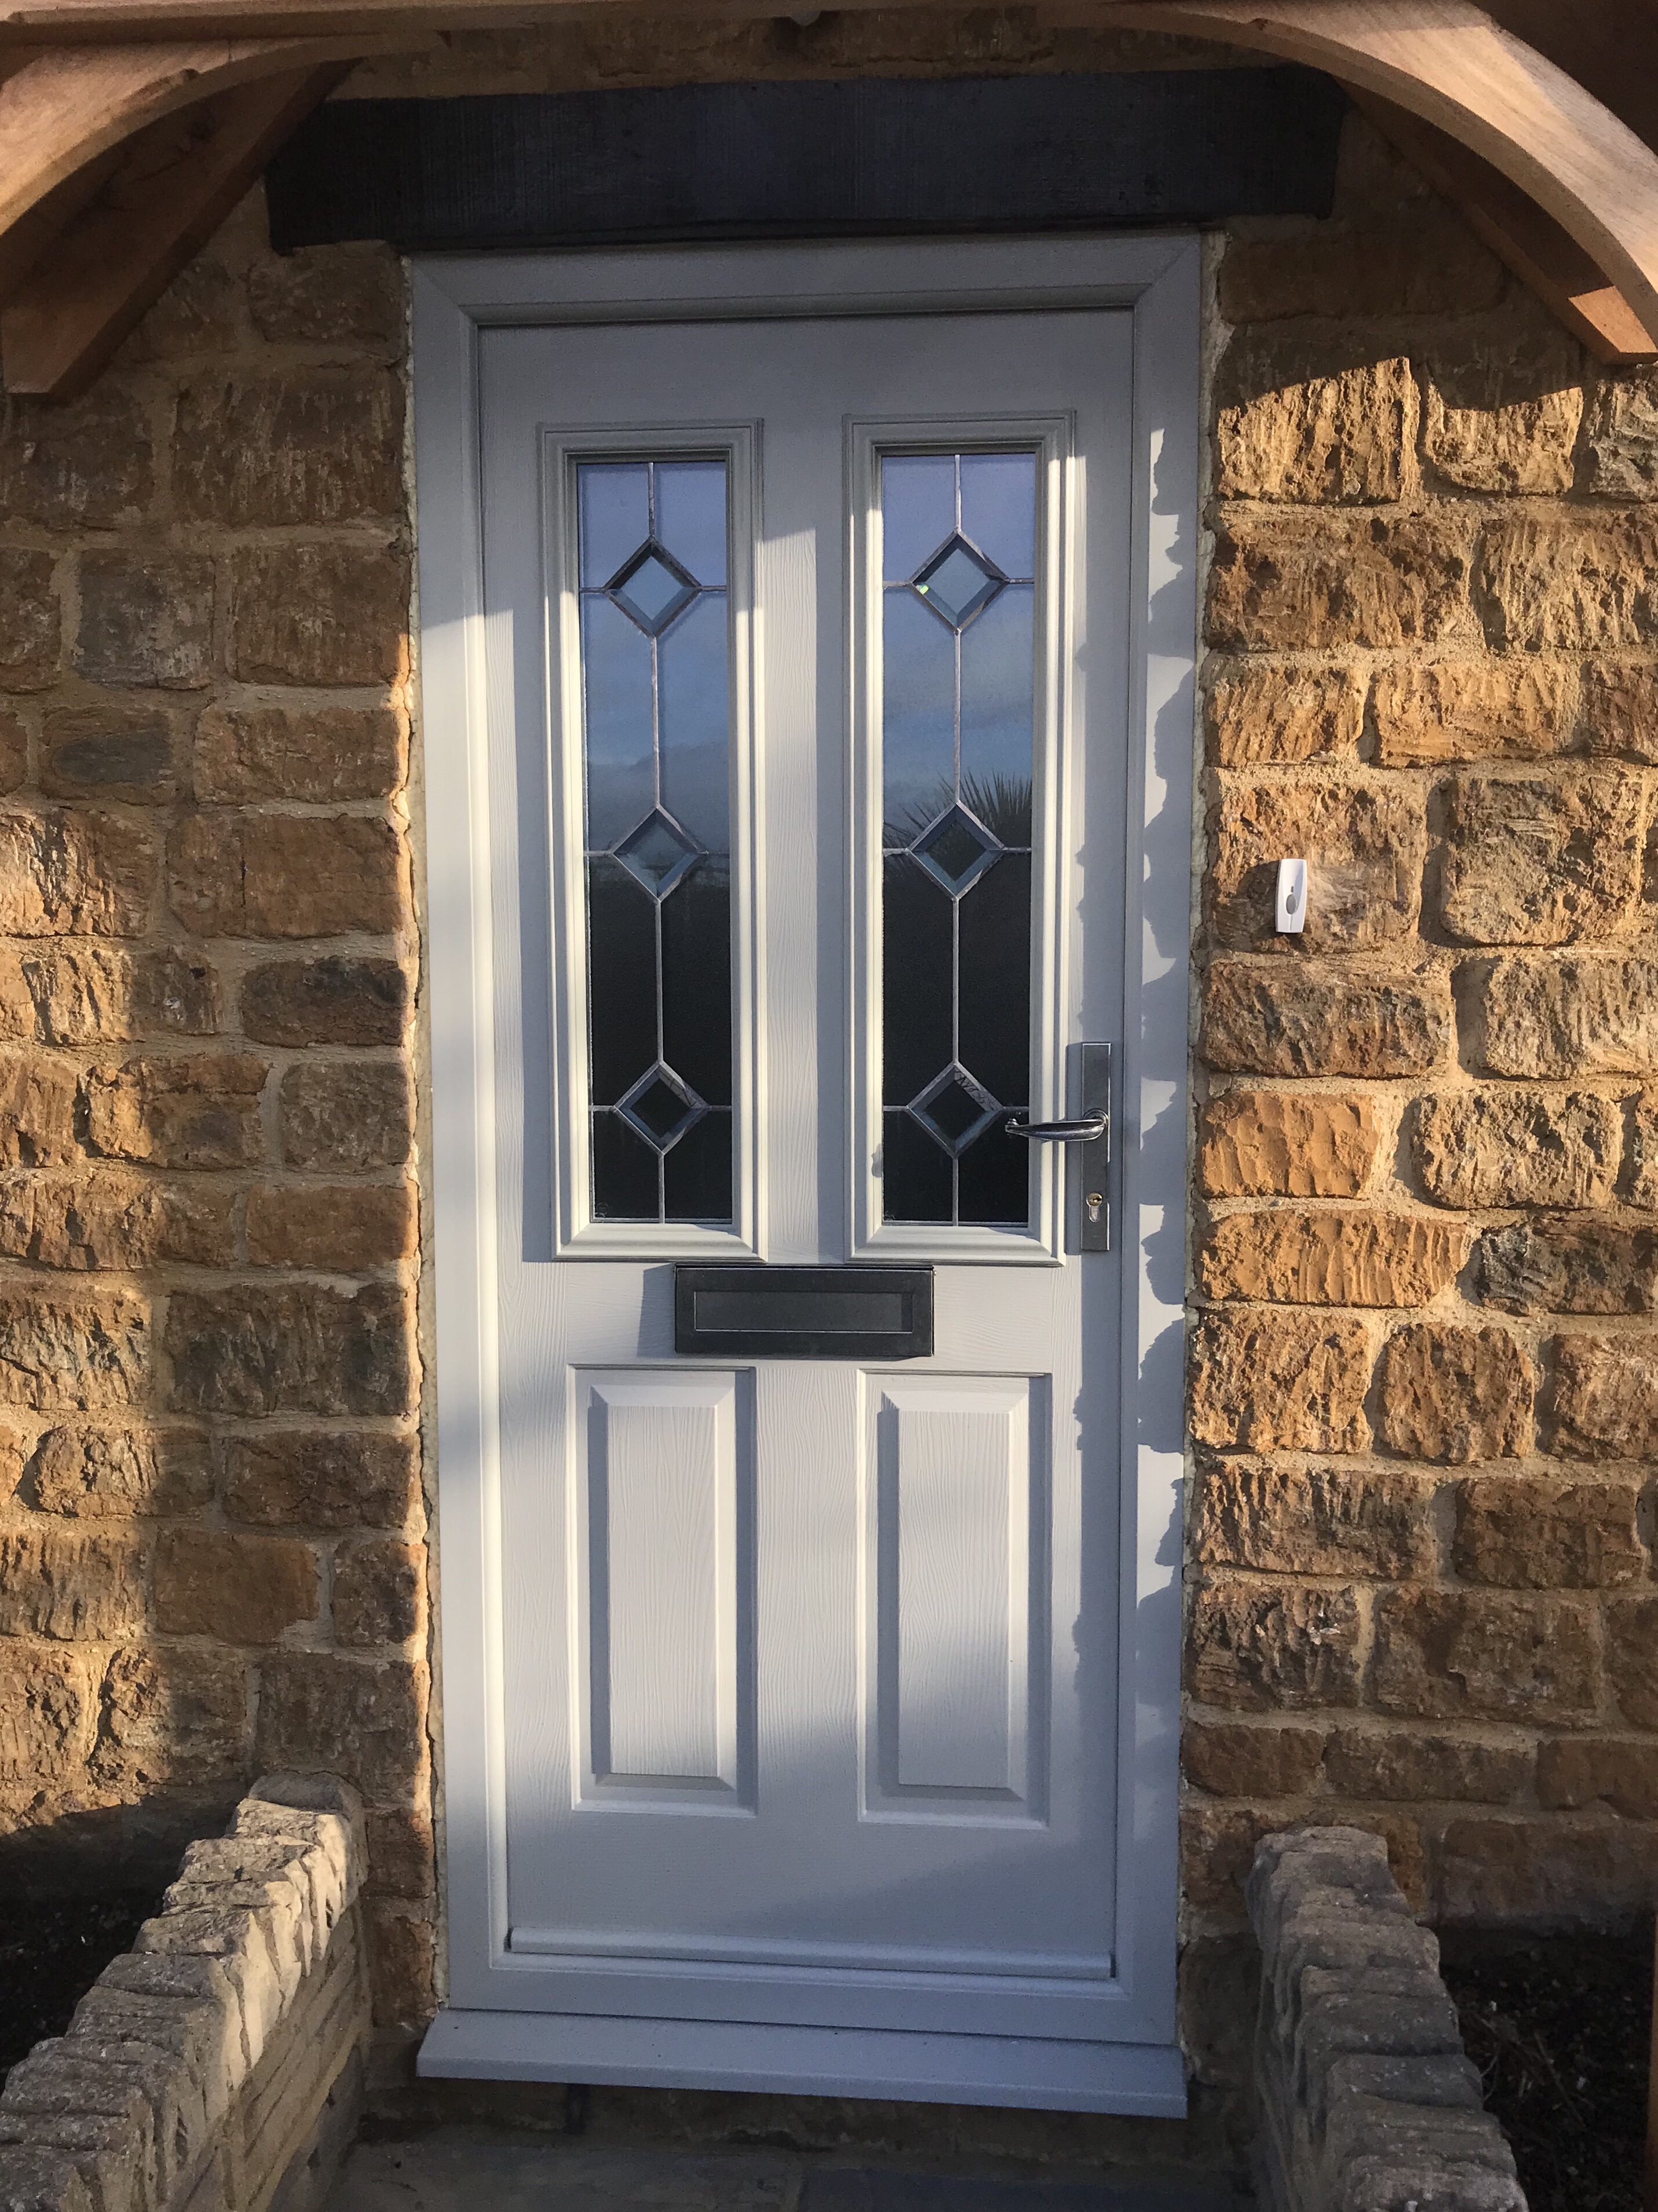 Agate Grey Composite Doors with Beveled Glass & Agate Grey Composite Doors | Neil Amos Windows